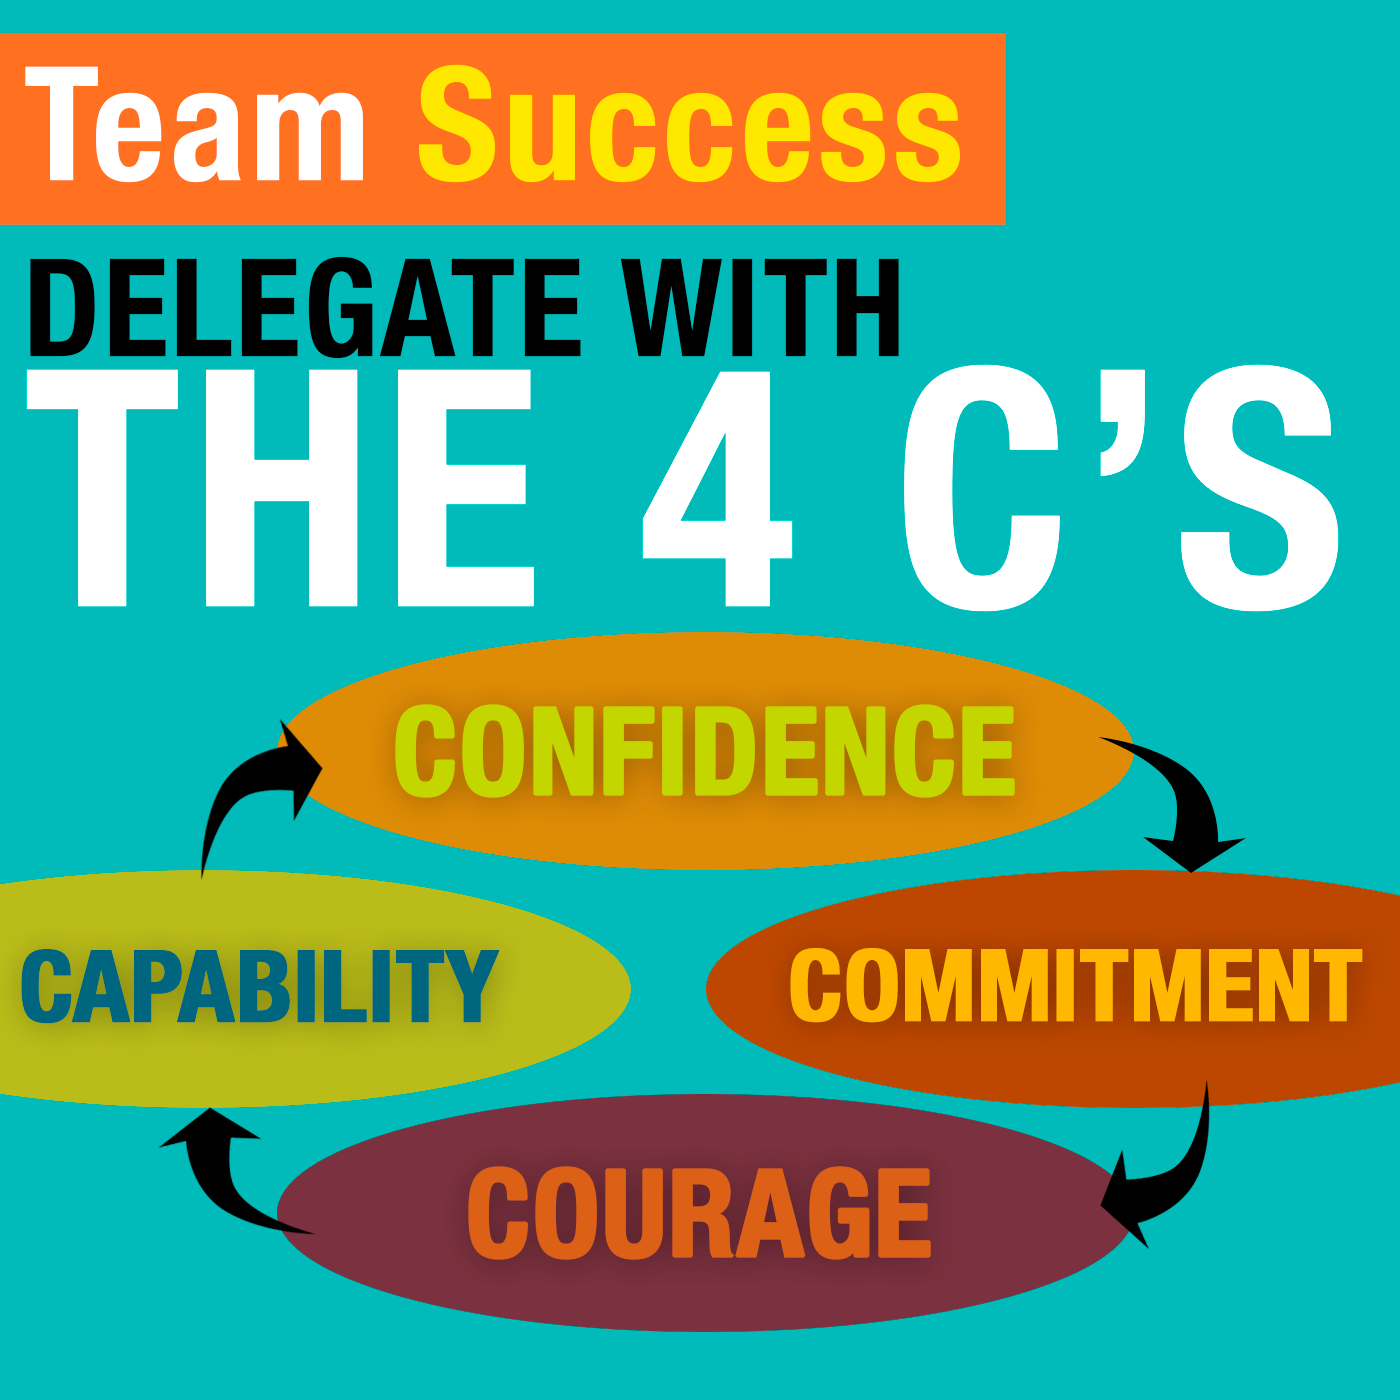 Delegate With The 4 C's